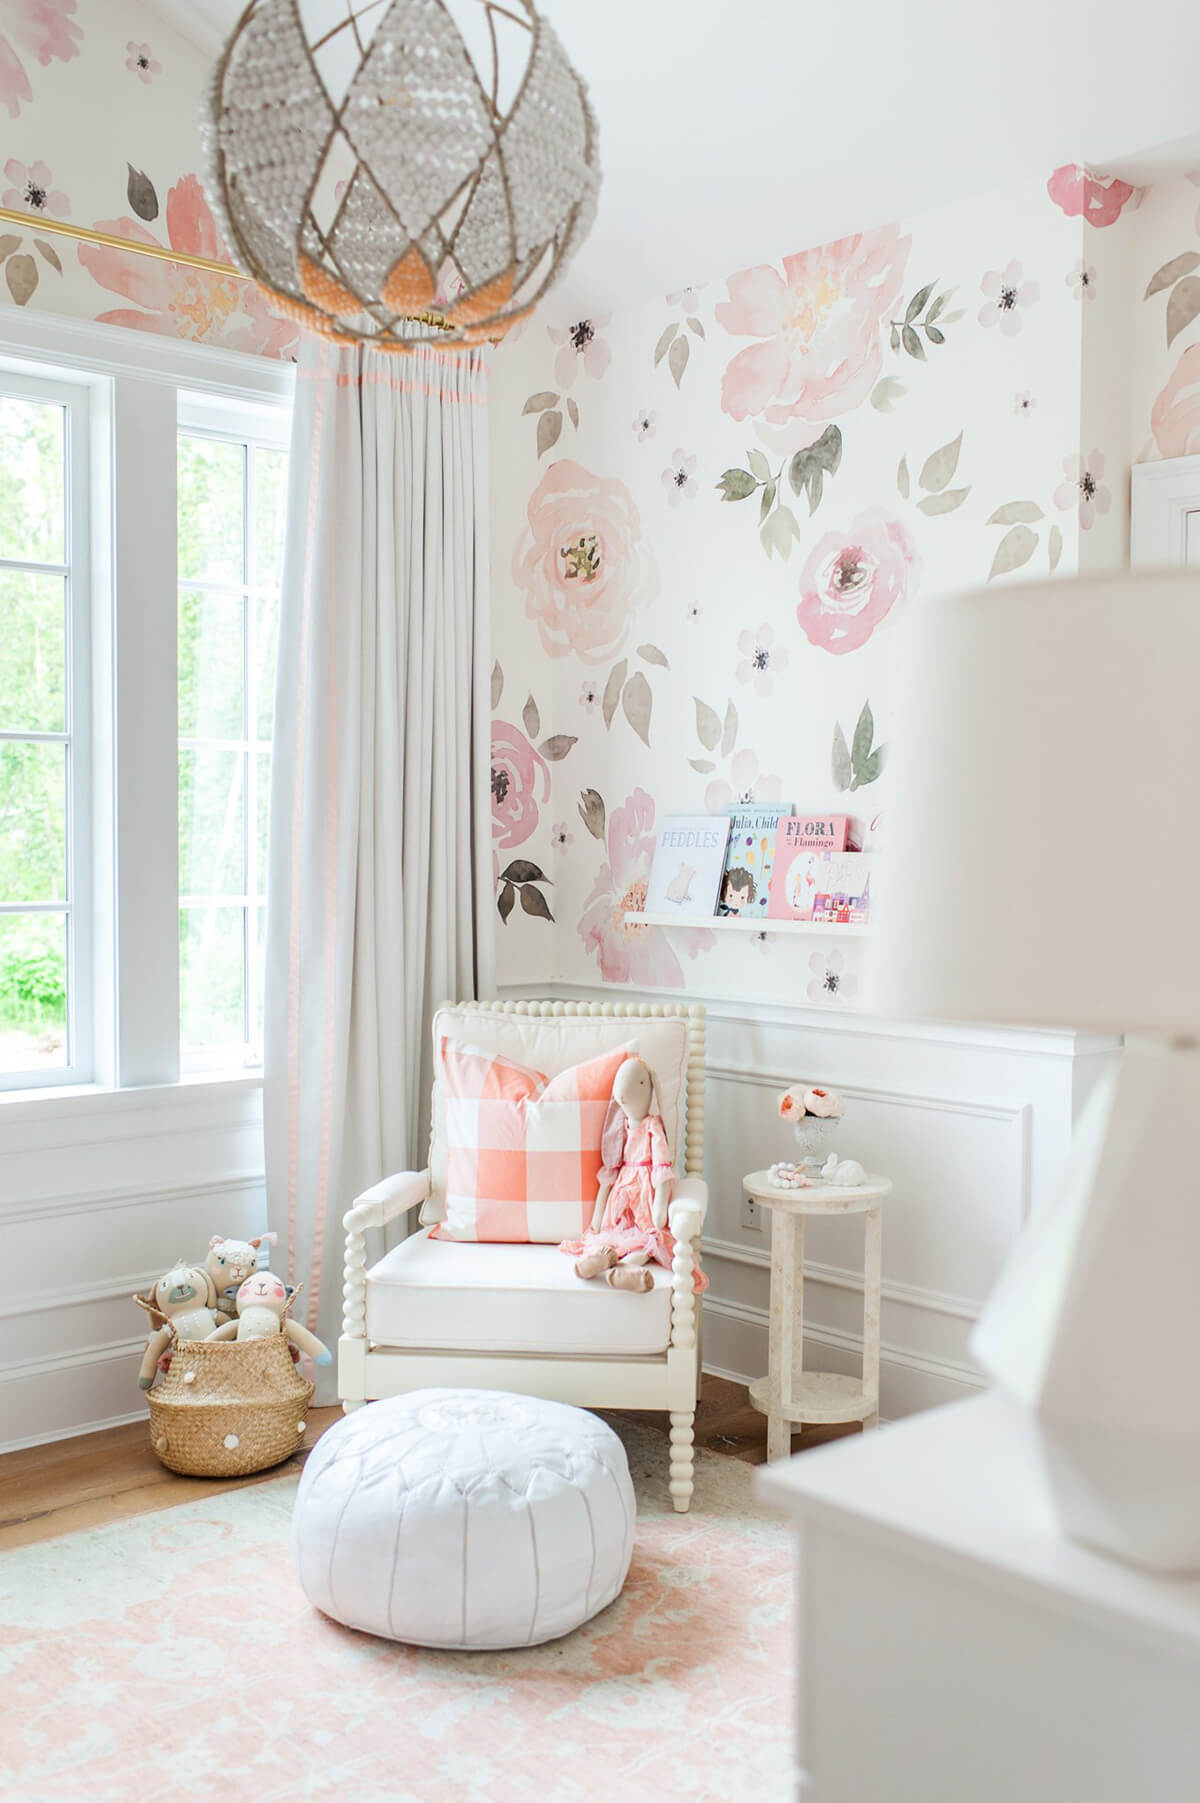 Muted Floral Pattern in Large Scale